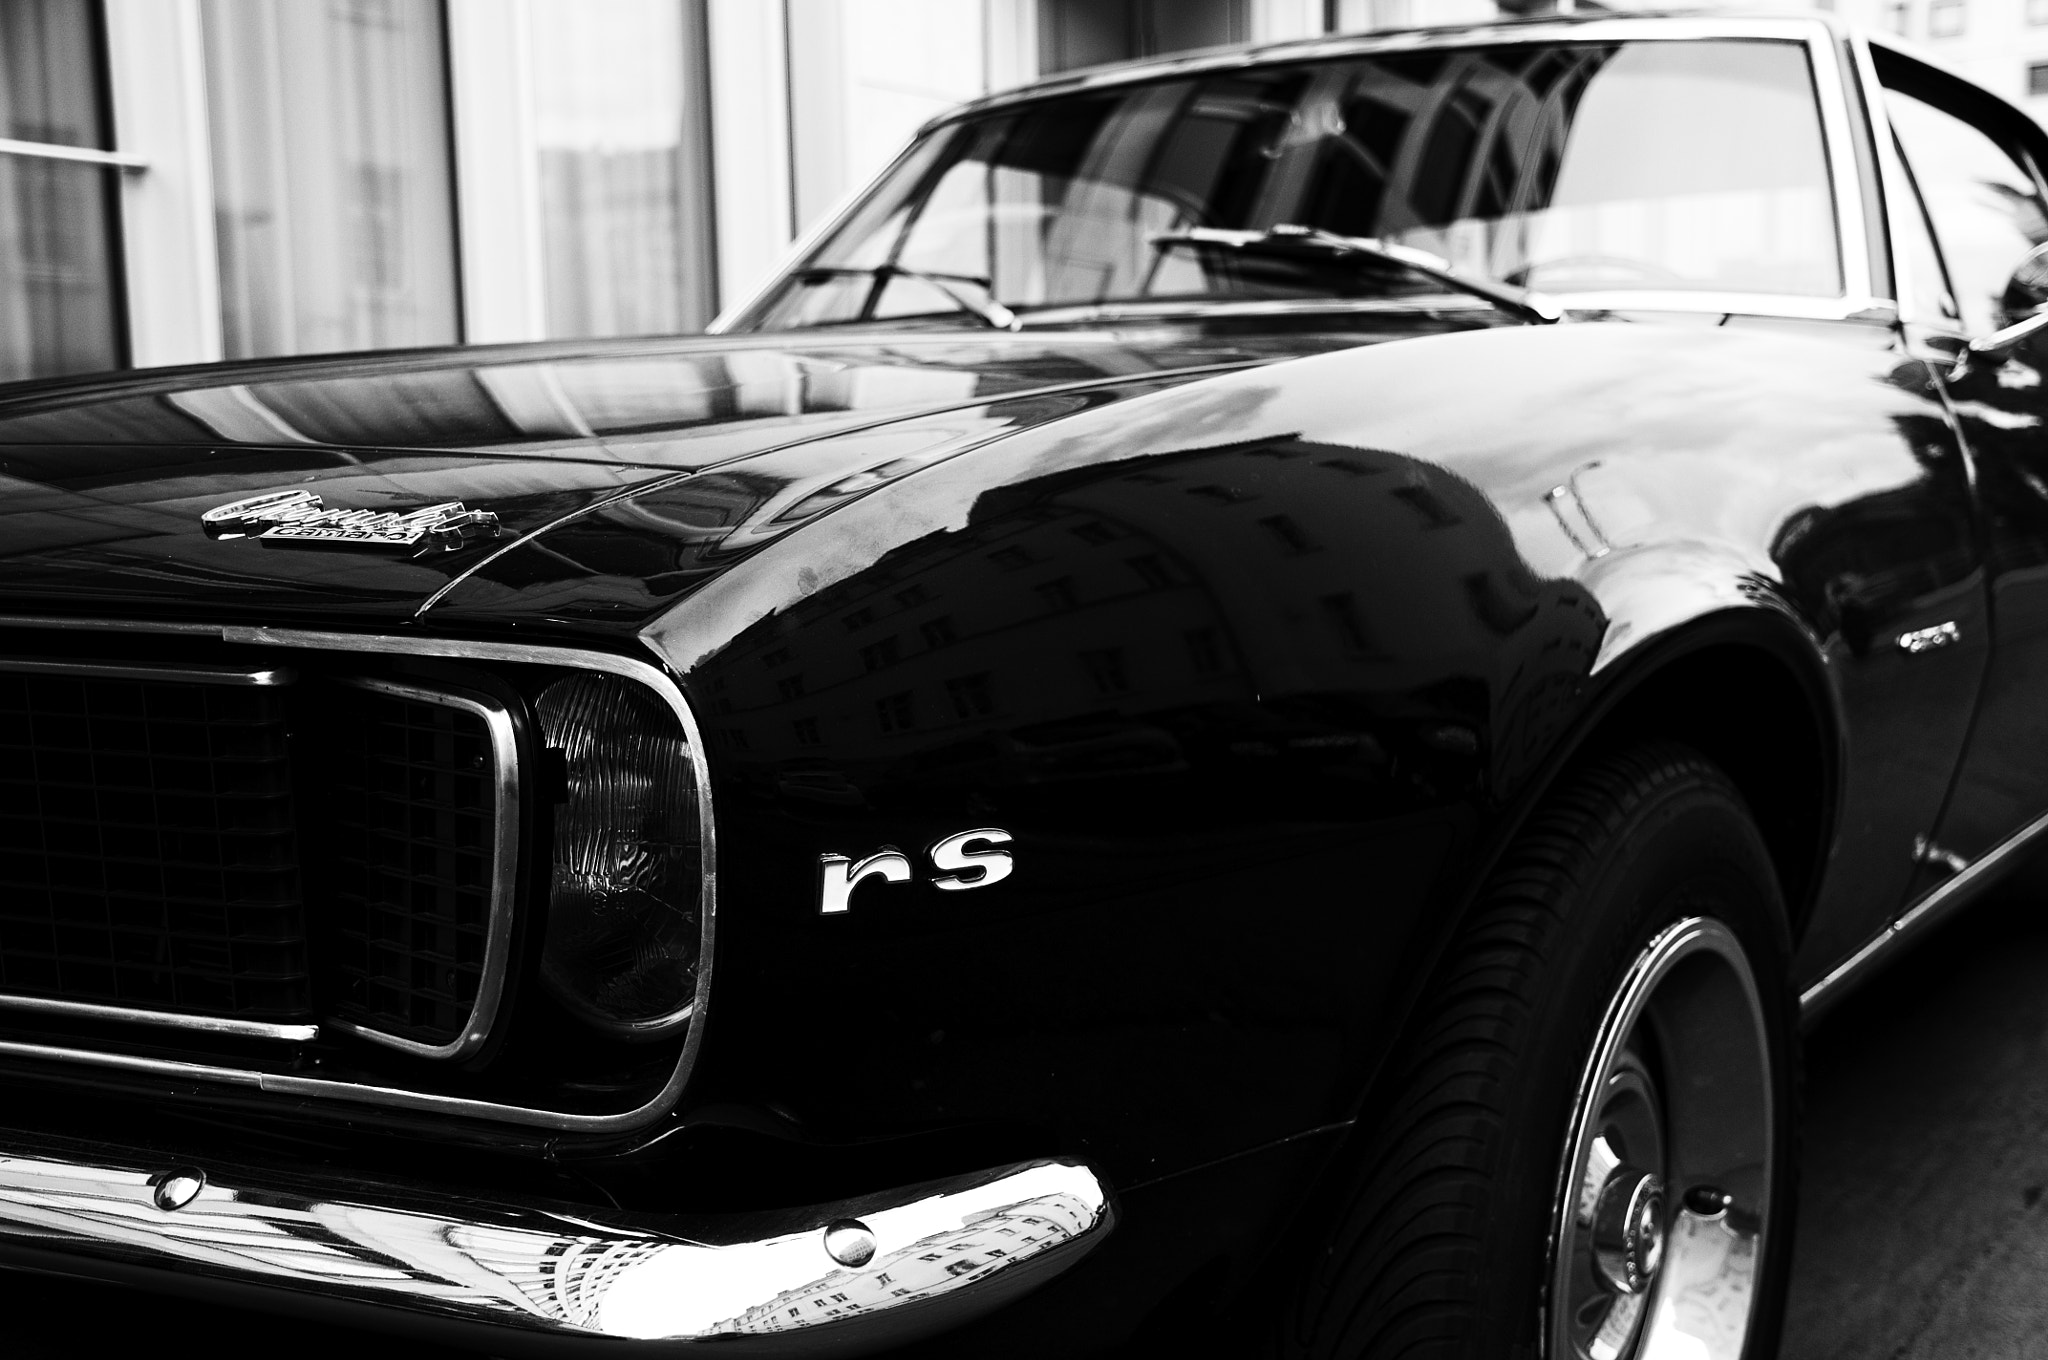 Photograph Camaro by Andreas Beck on 500px